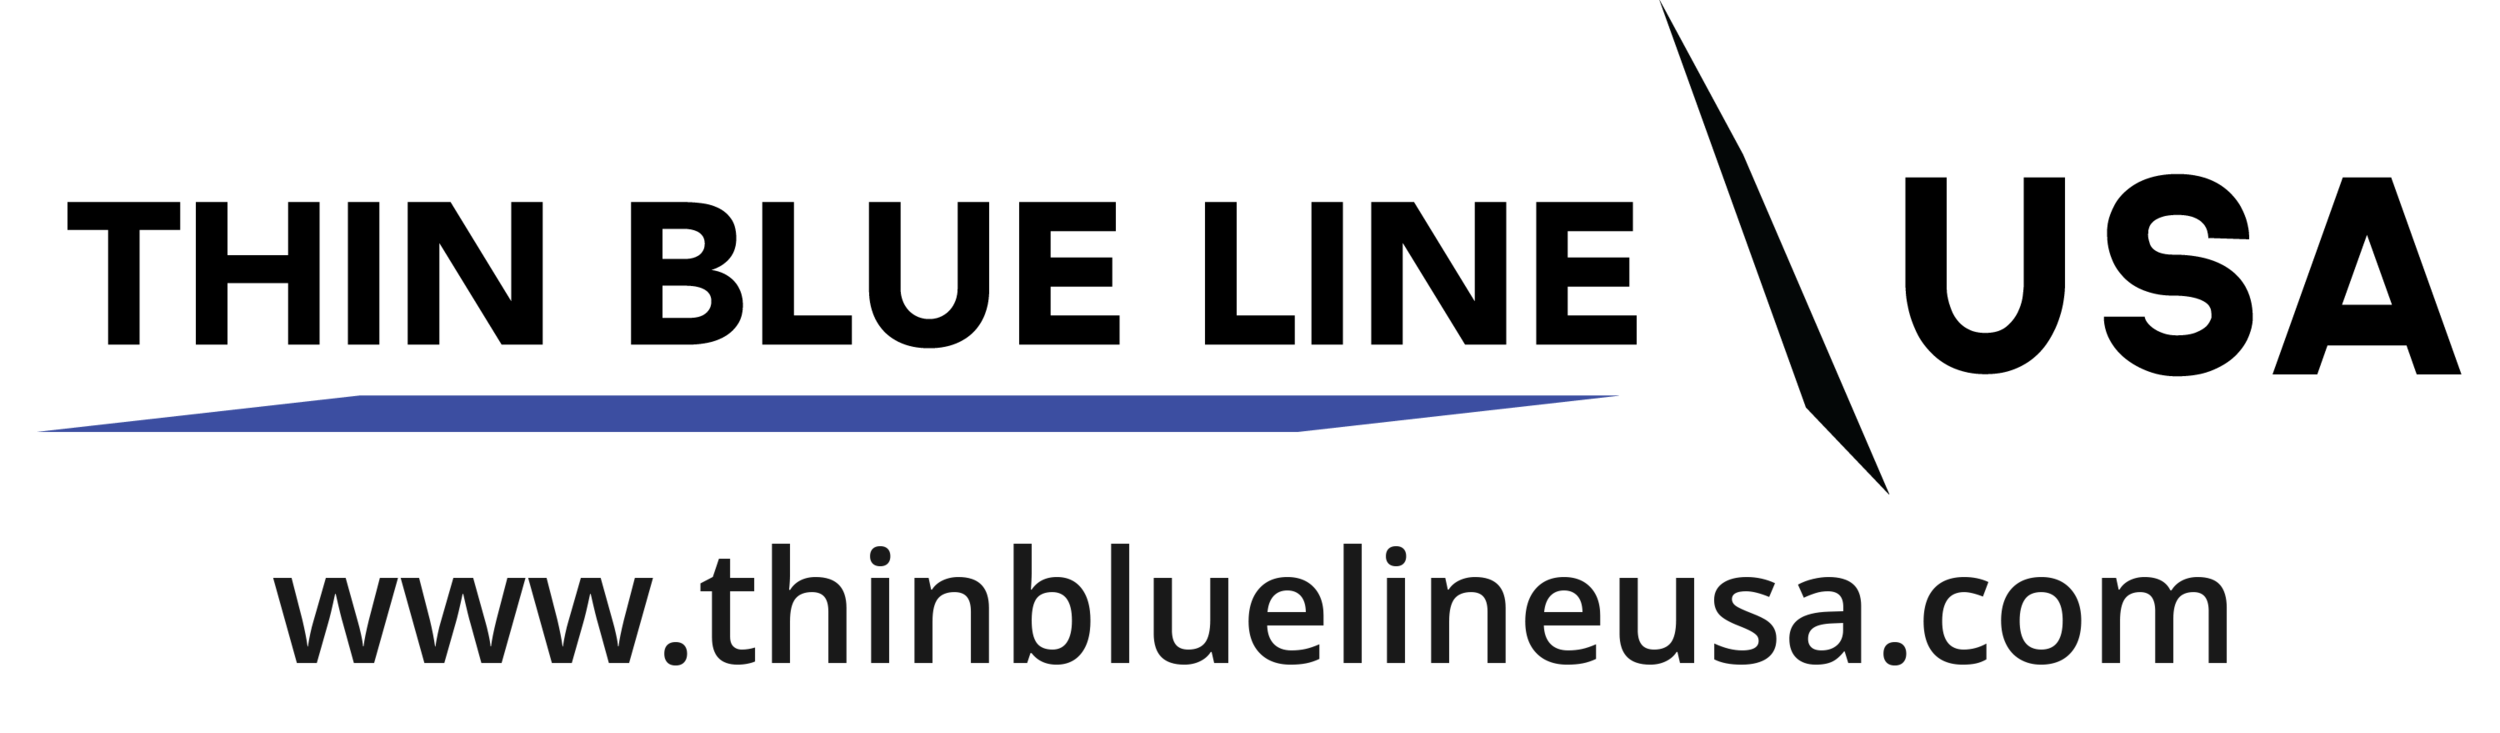 Logo - Thin Blue Line USA V2.png